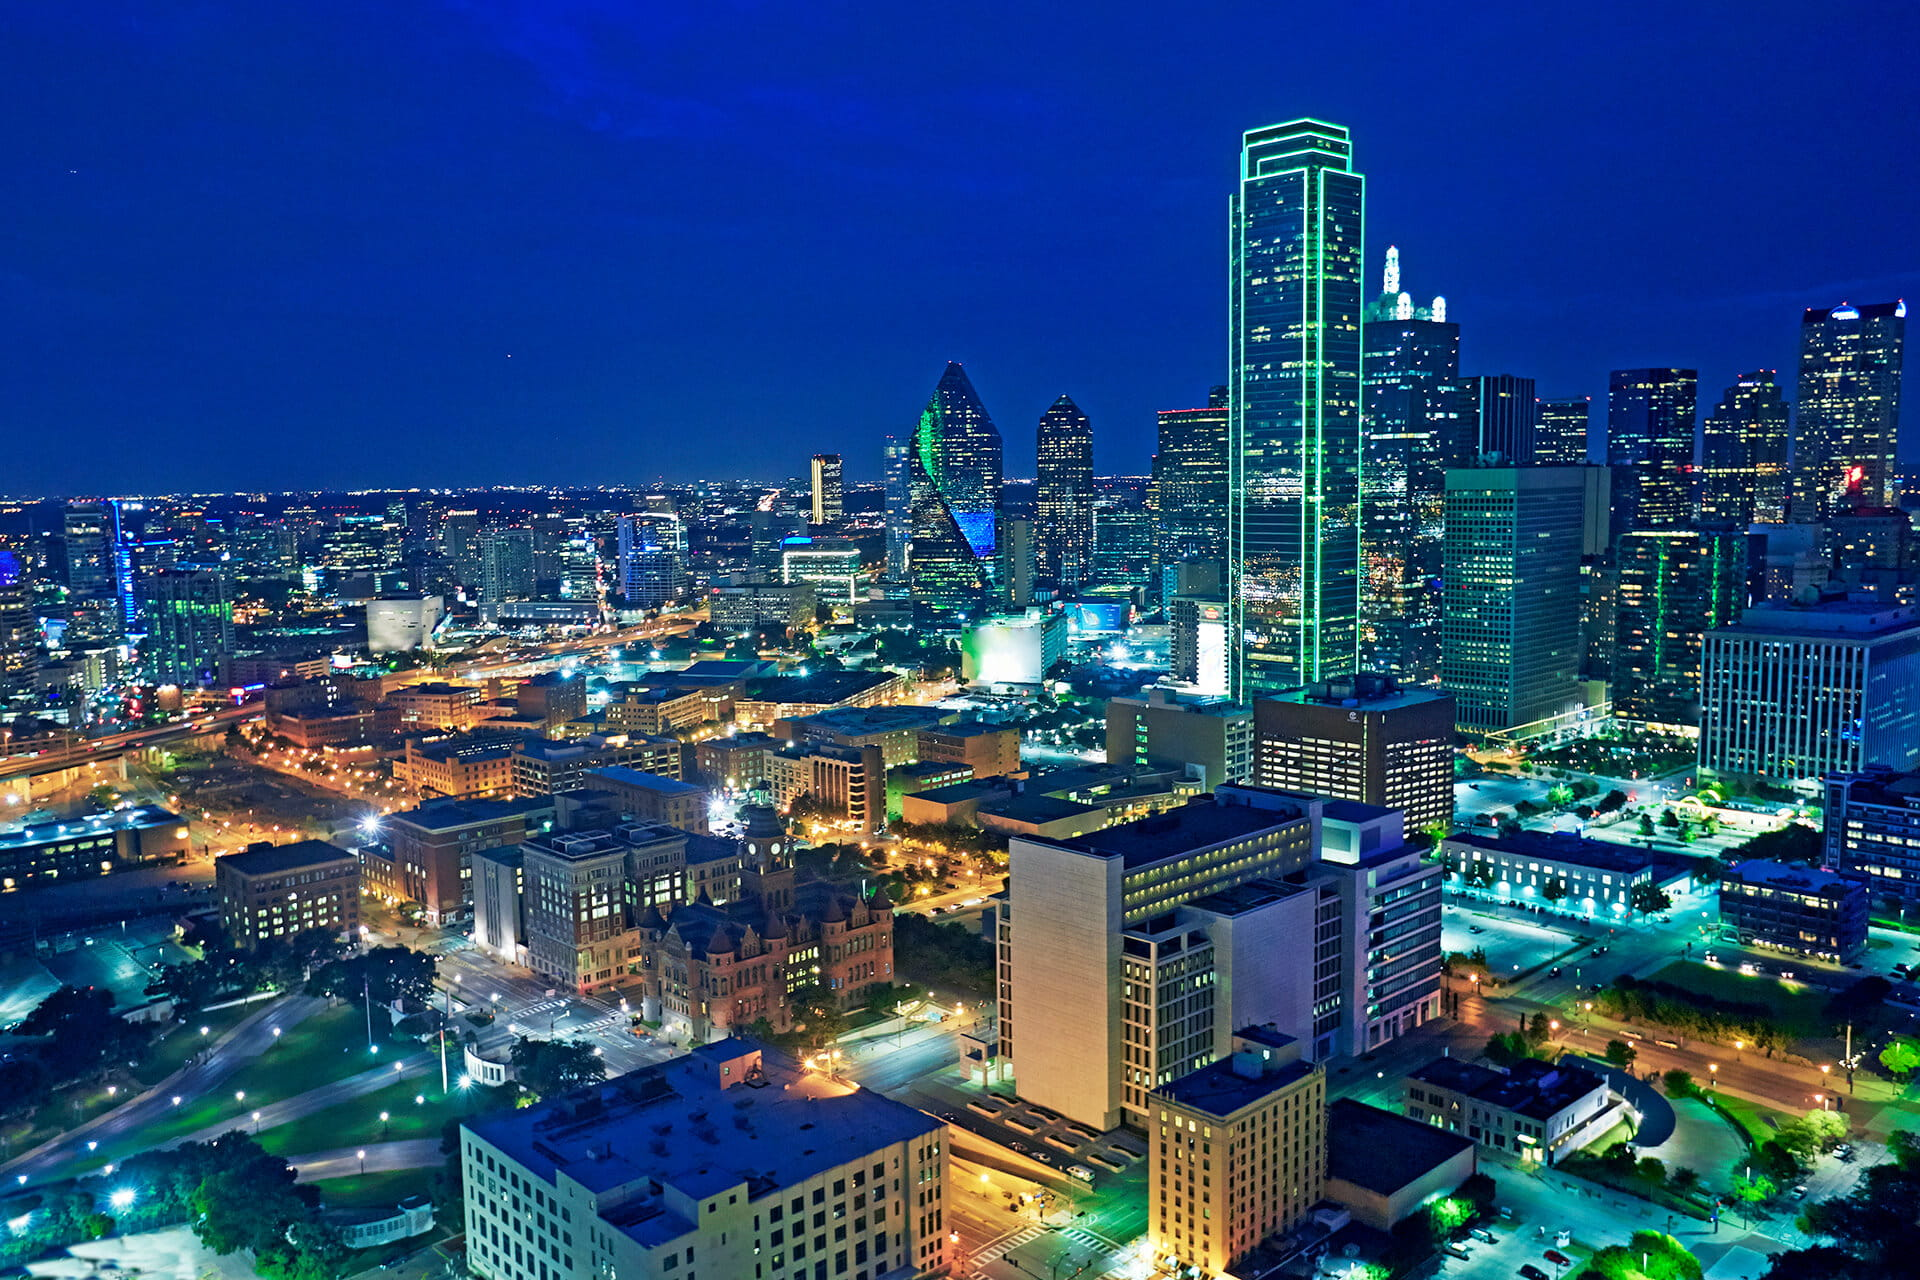 Cityscape of Downtown Dallas at night